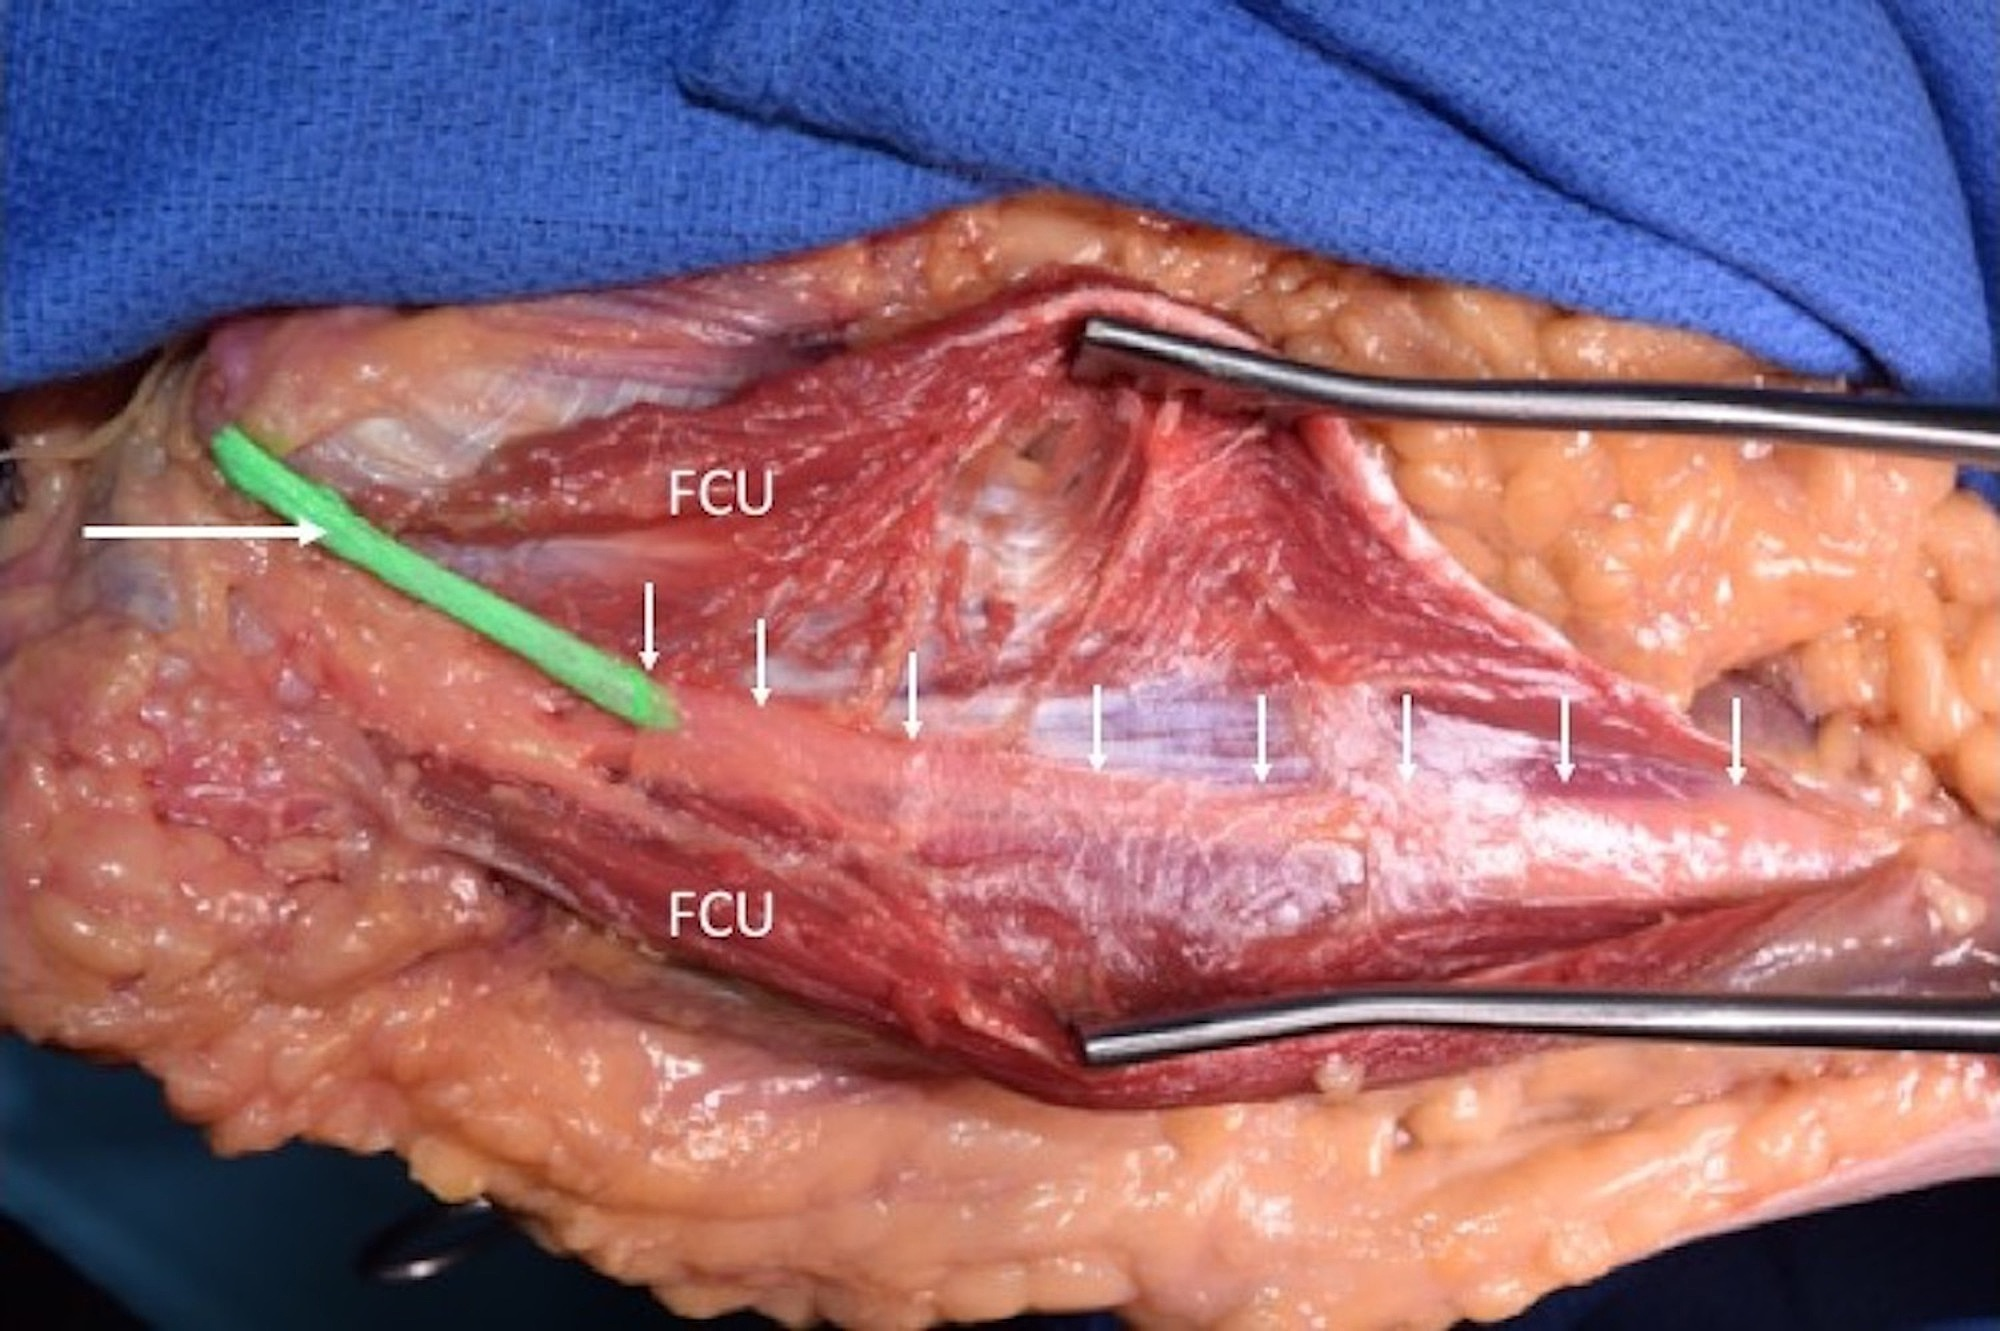 Cureus | The Deep Fascia of the Forearm and the Ulnar Nerve: An ...